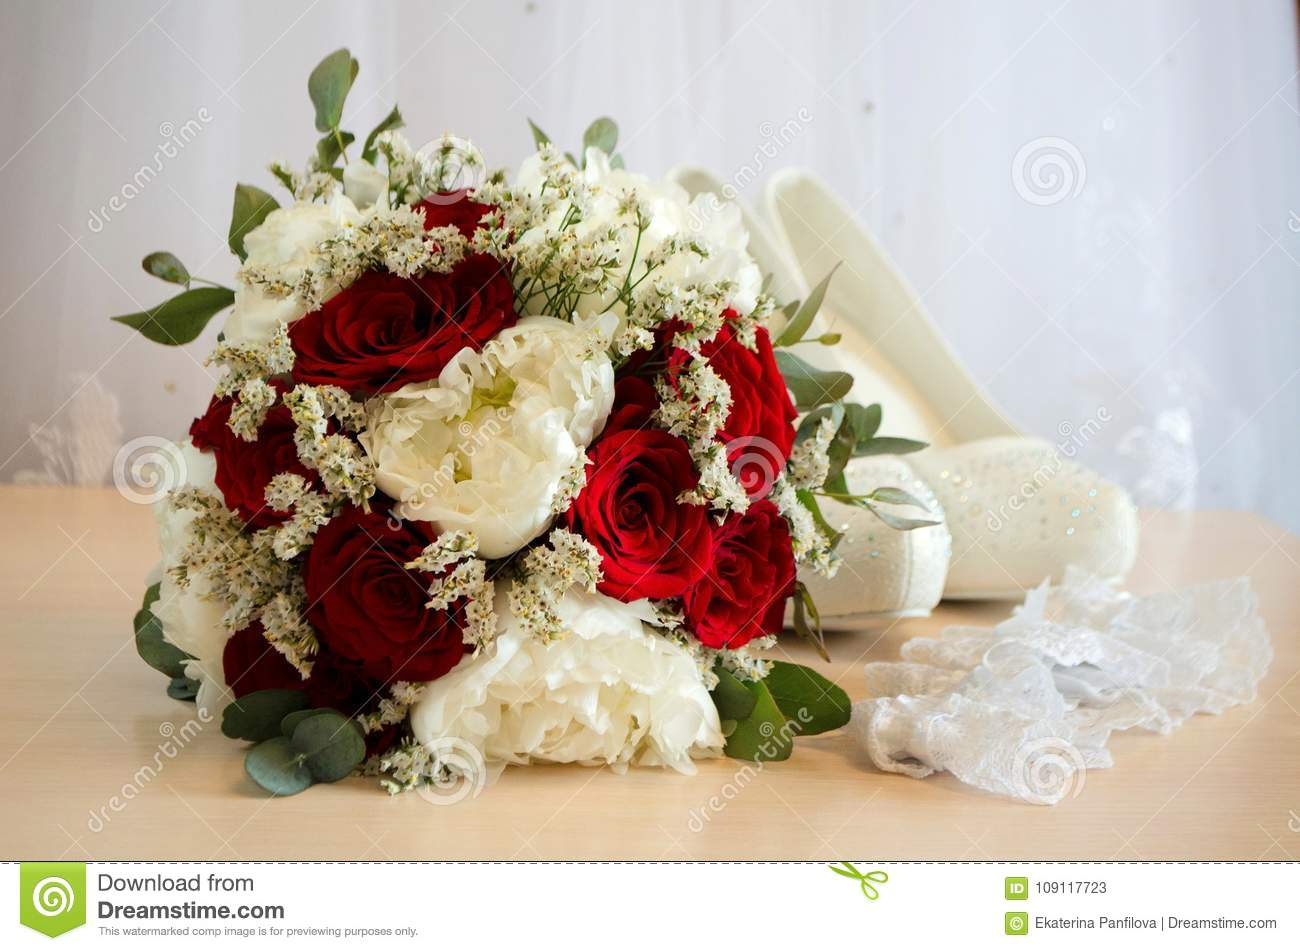 bridal bouquet with red and white roses stock image image of bride